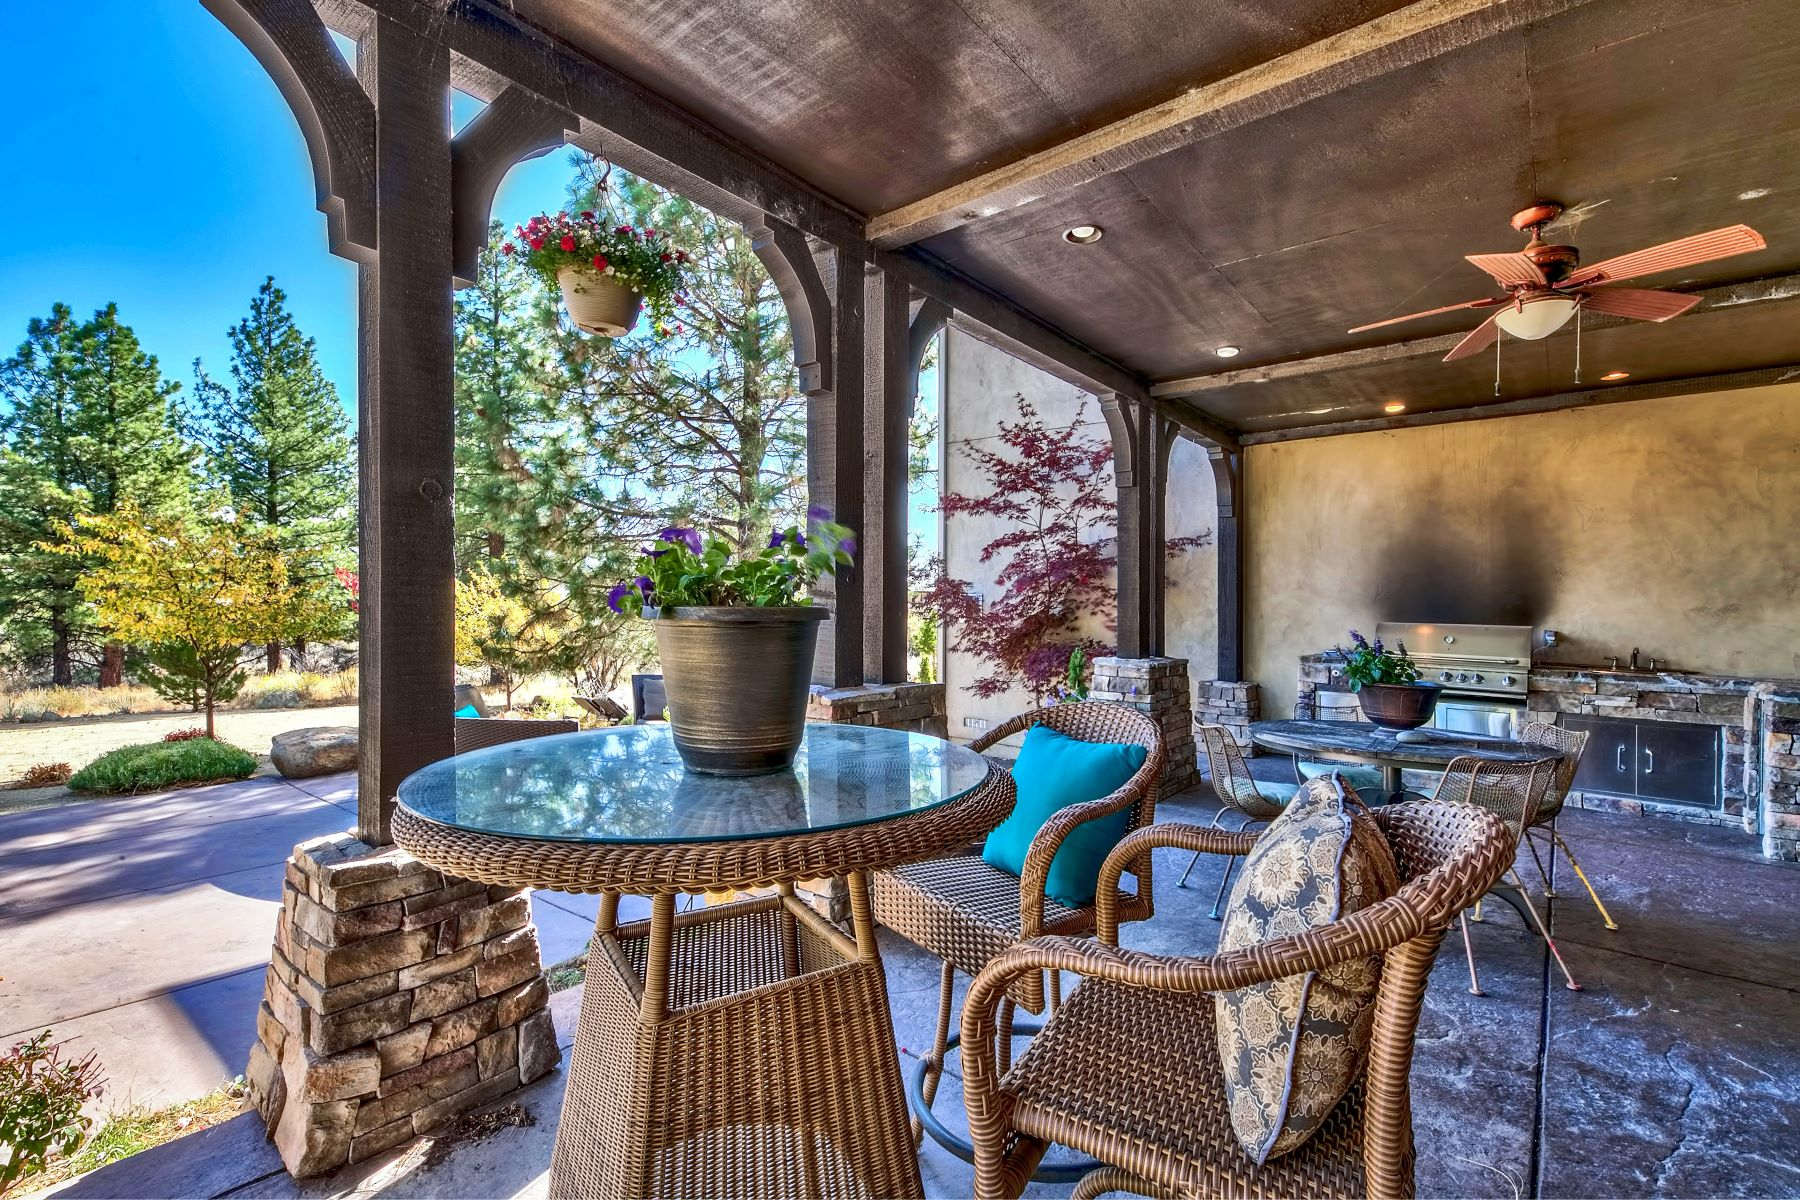 Additional photo for property listing at Beauty, elegance, and nature! 395 Mount Mahogany Ct. Reno, Nevada 89511 United States